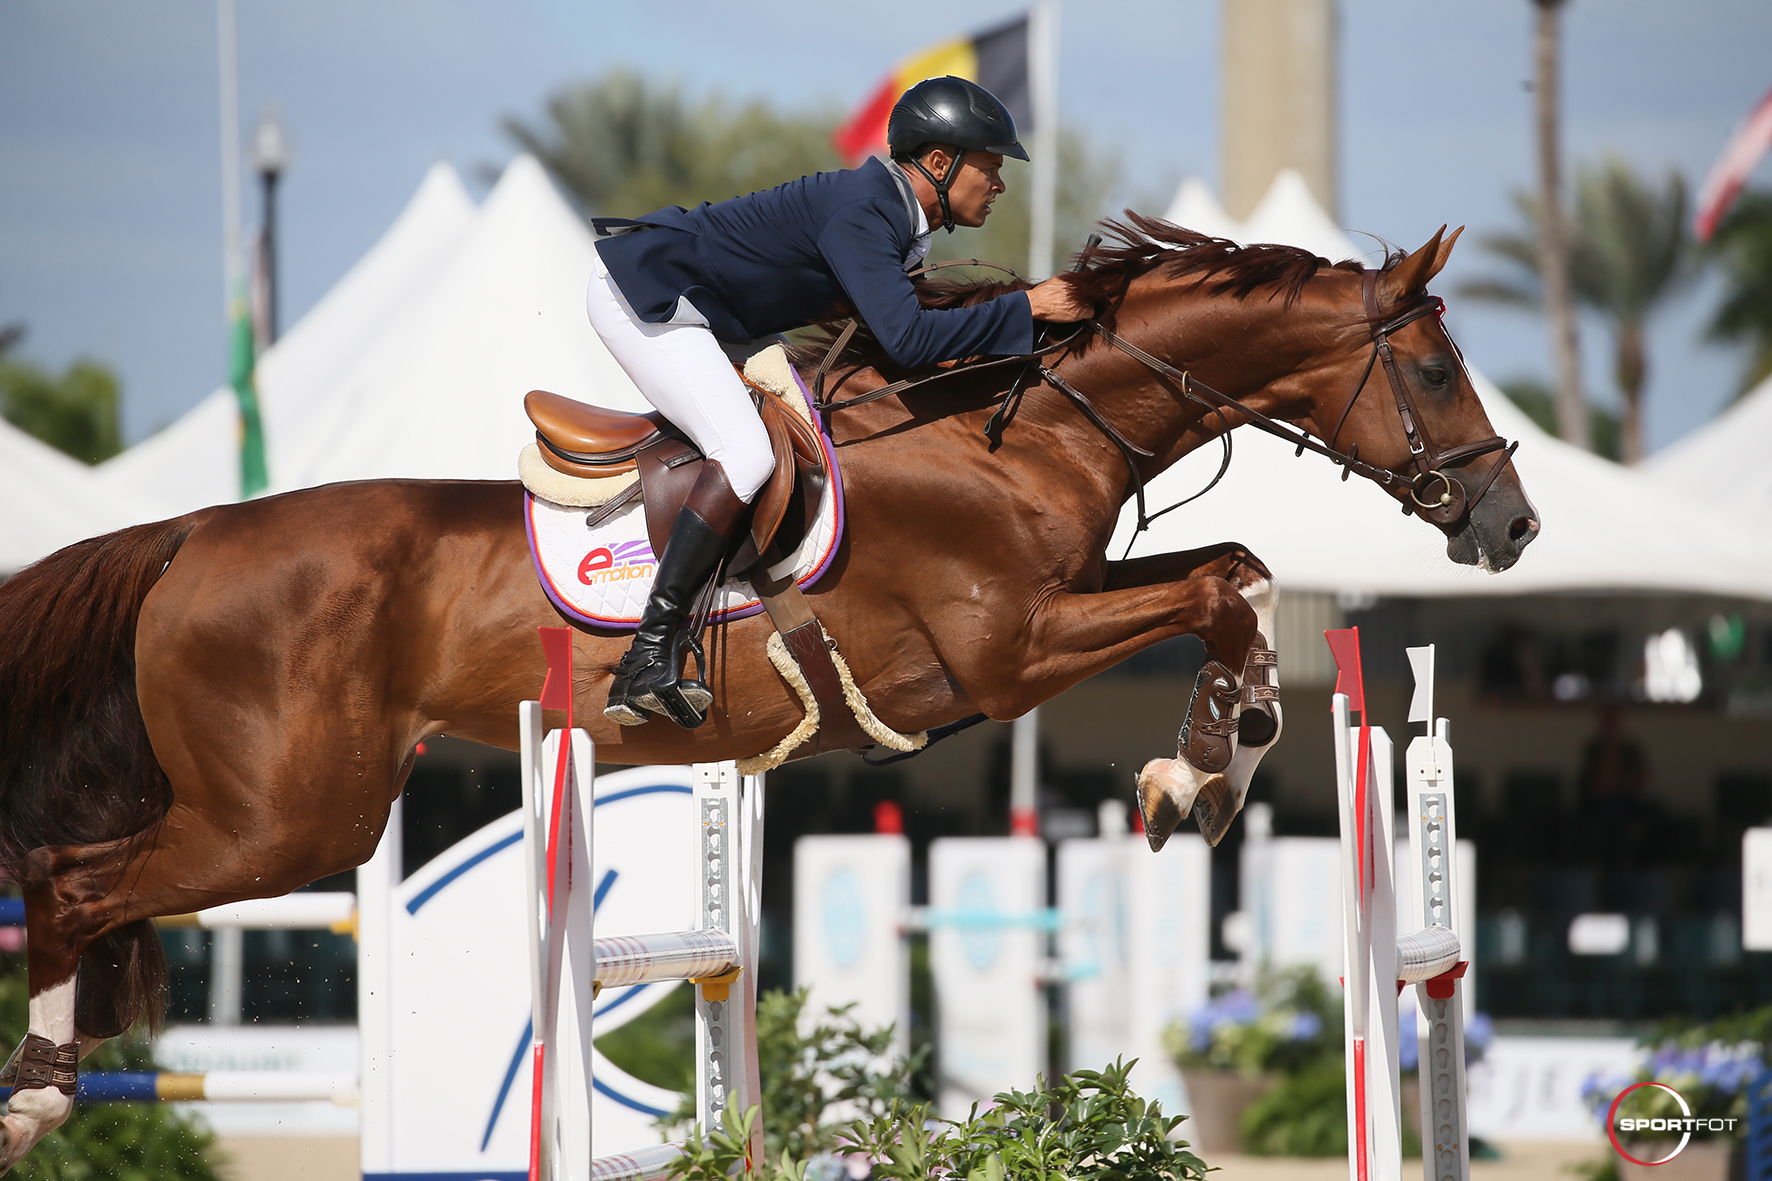 Marcelo Ciavaglia Claims WEF Challenge Cup Win in WEF Debut